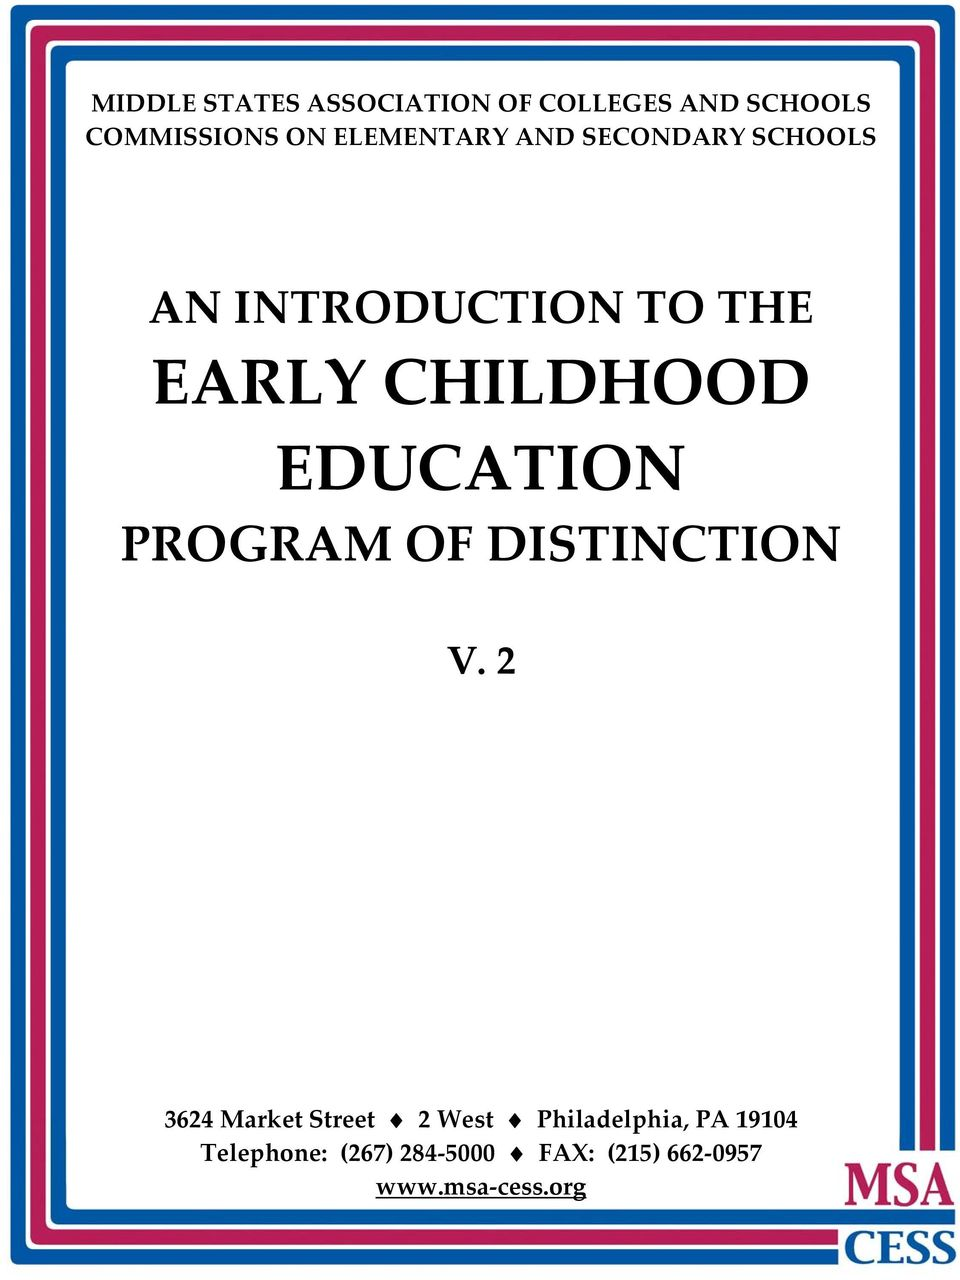 EDUCATION PROGRAM OF DISTINCTION V.